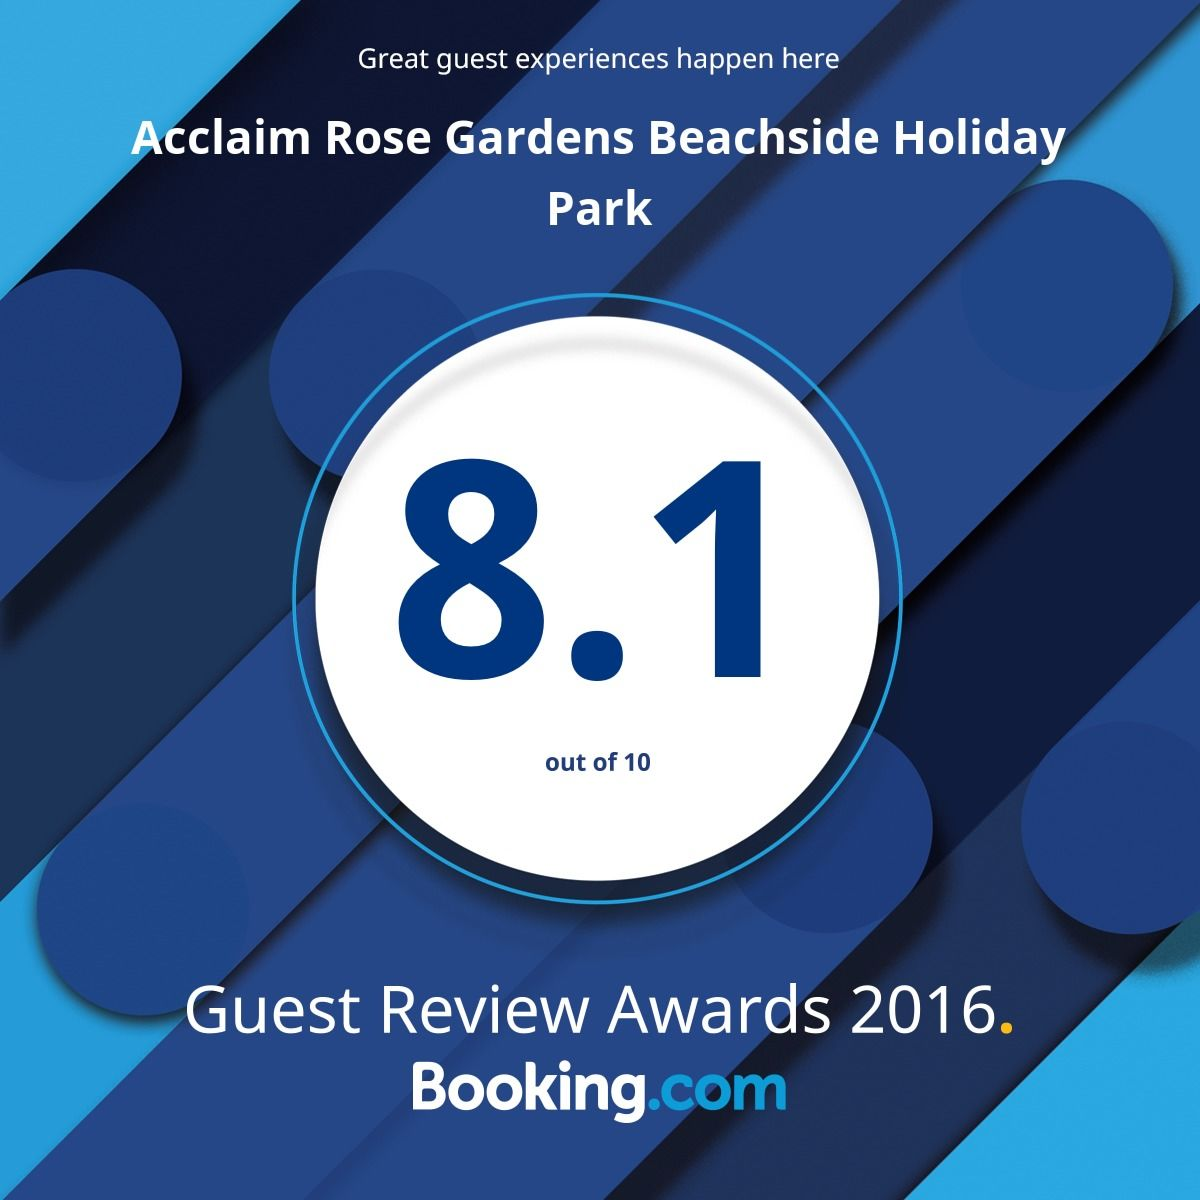 Acclaim Rose Gardens Beachside Holiday Park Booking.com 2016 Customer Review Award